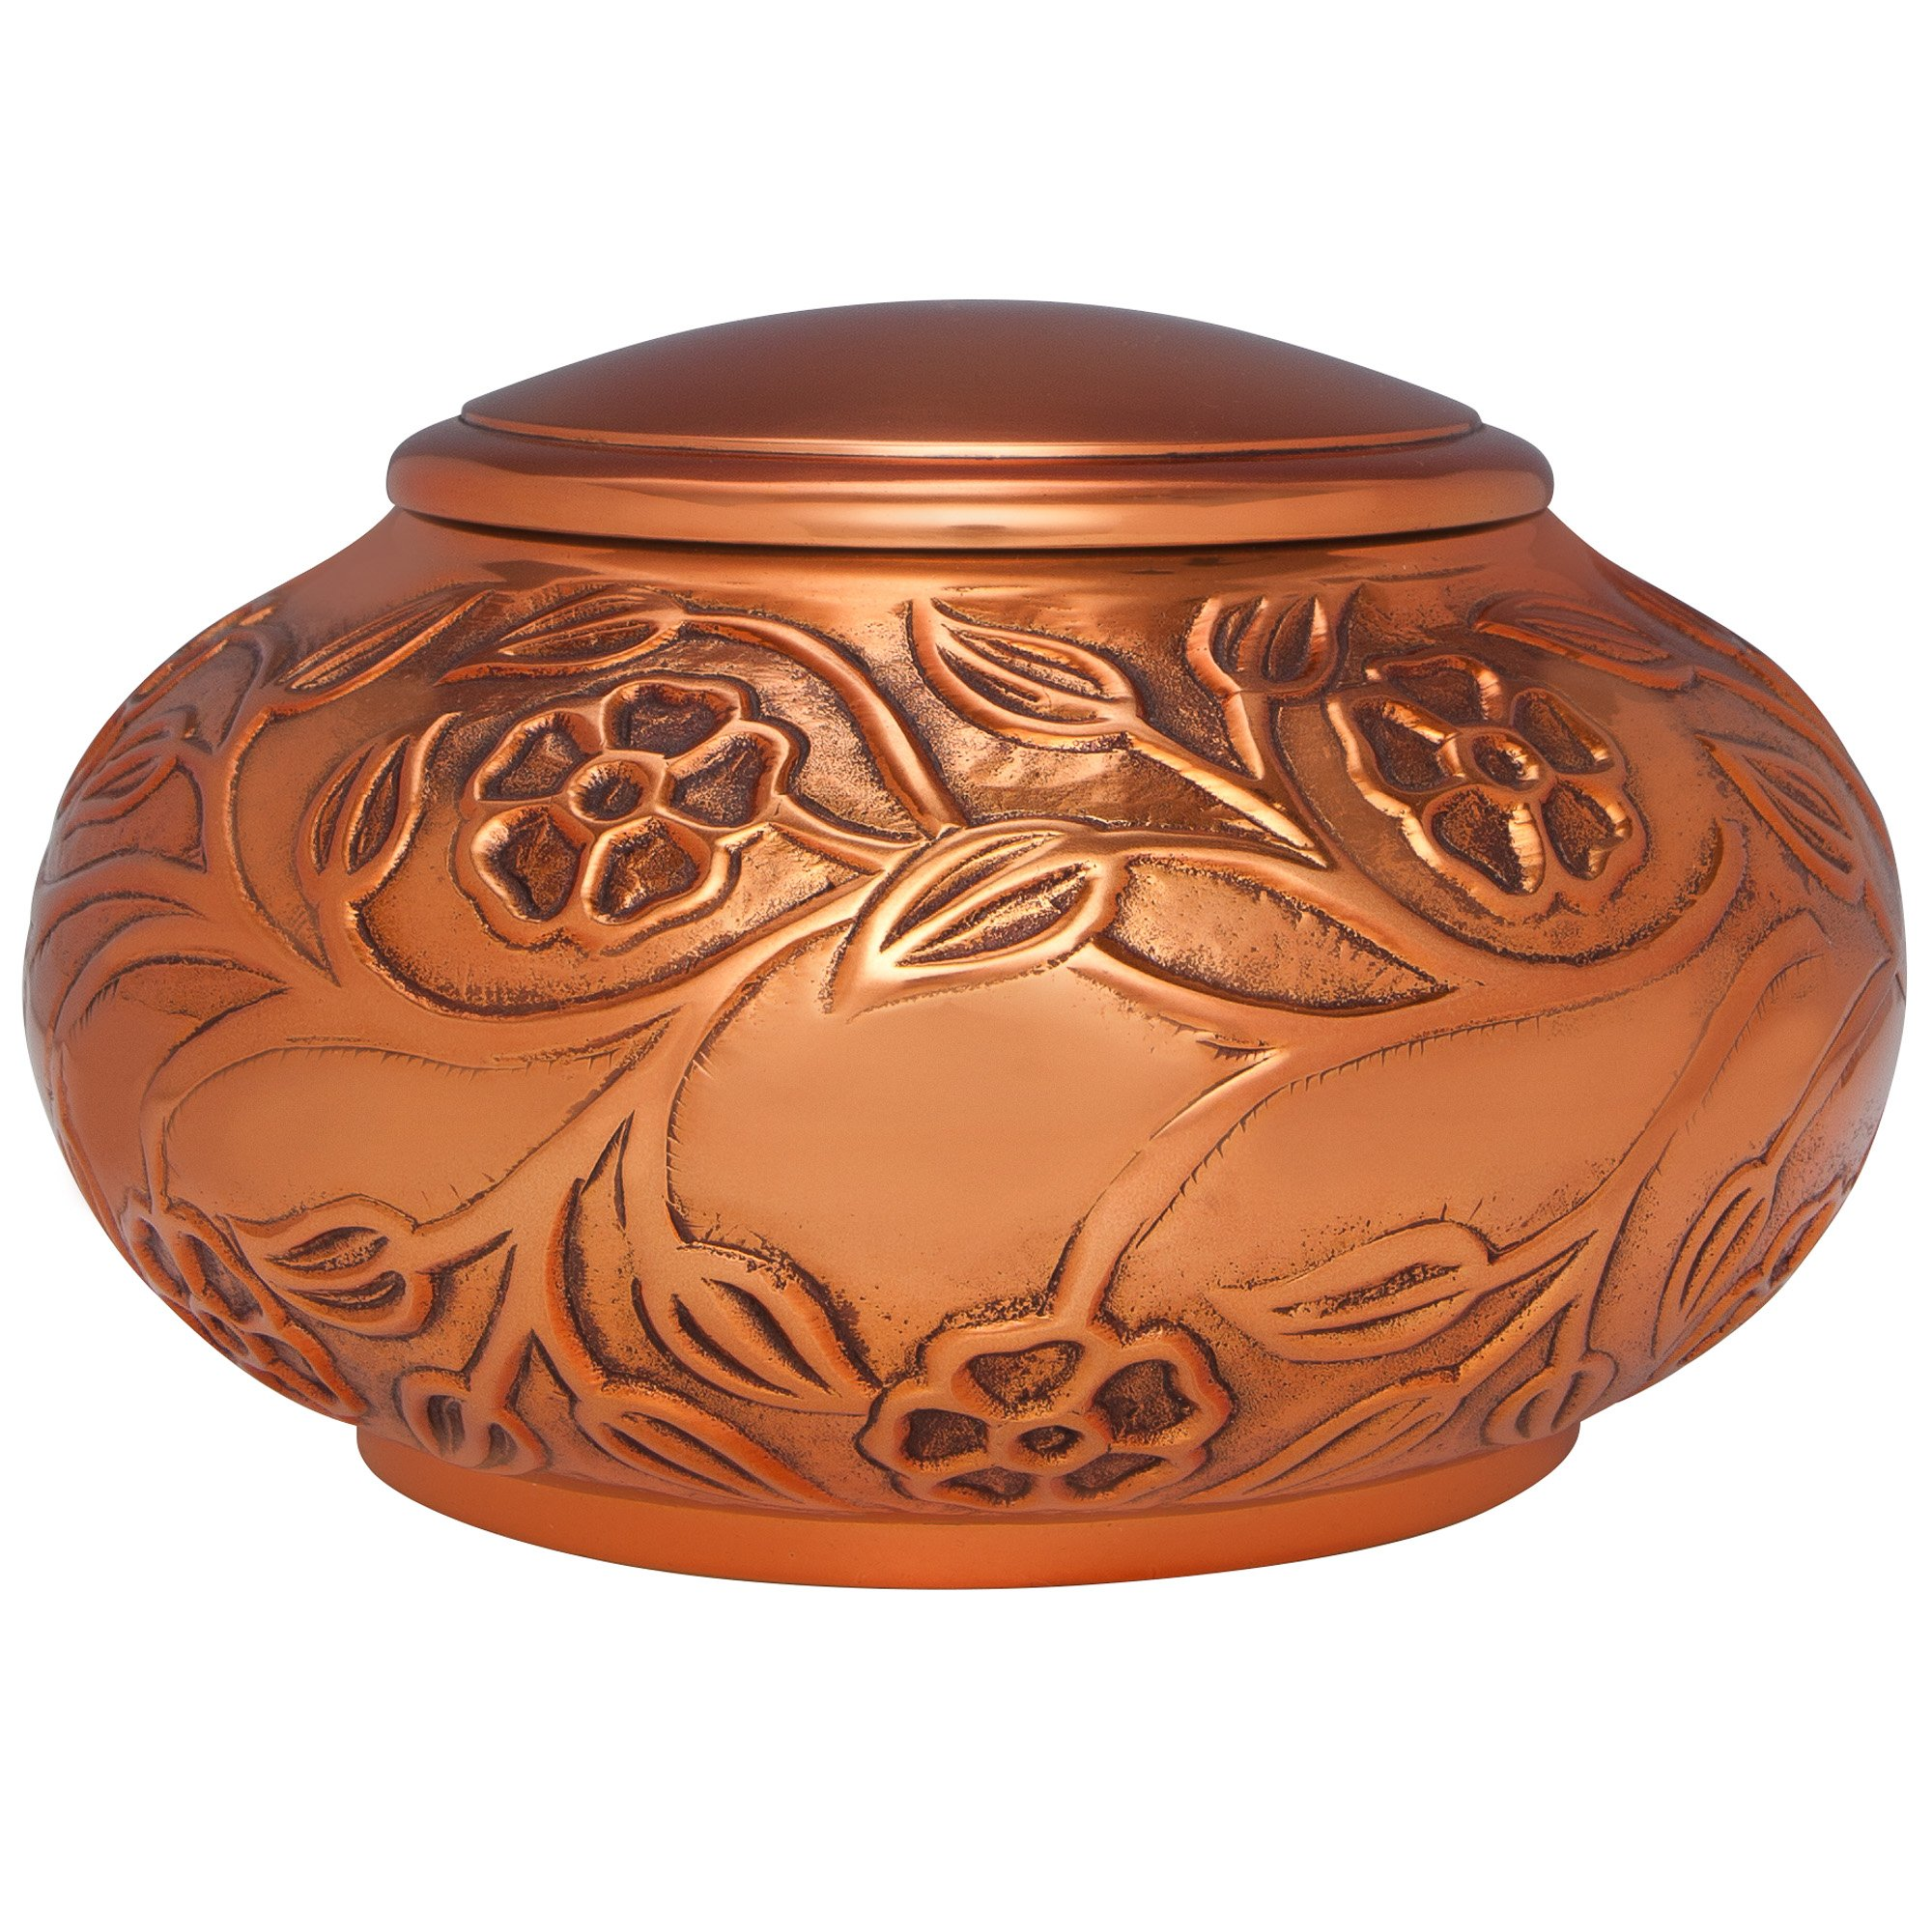 Copper Funeral Urn by Liliane Memorials - Cremation Urn for Human Ashes - Hand Made in Brass - Suitable for Cemetery Burial or Niche - Large Size fits remains of Adults up to 70 lbs